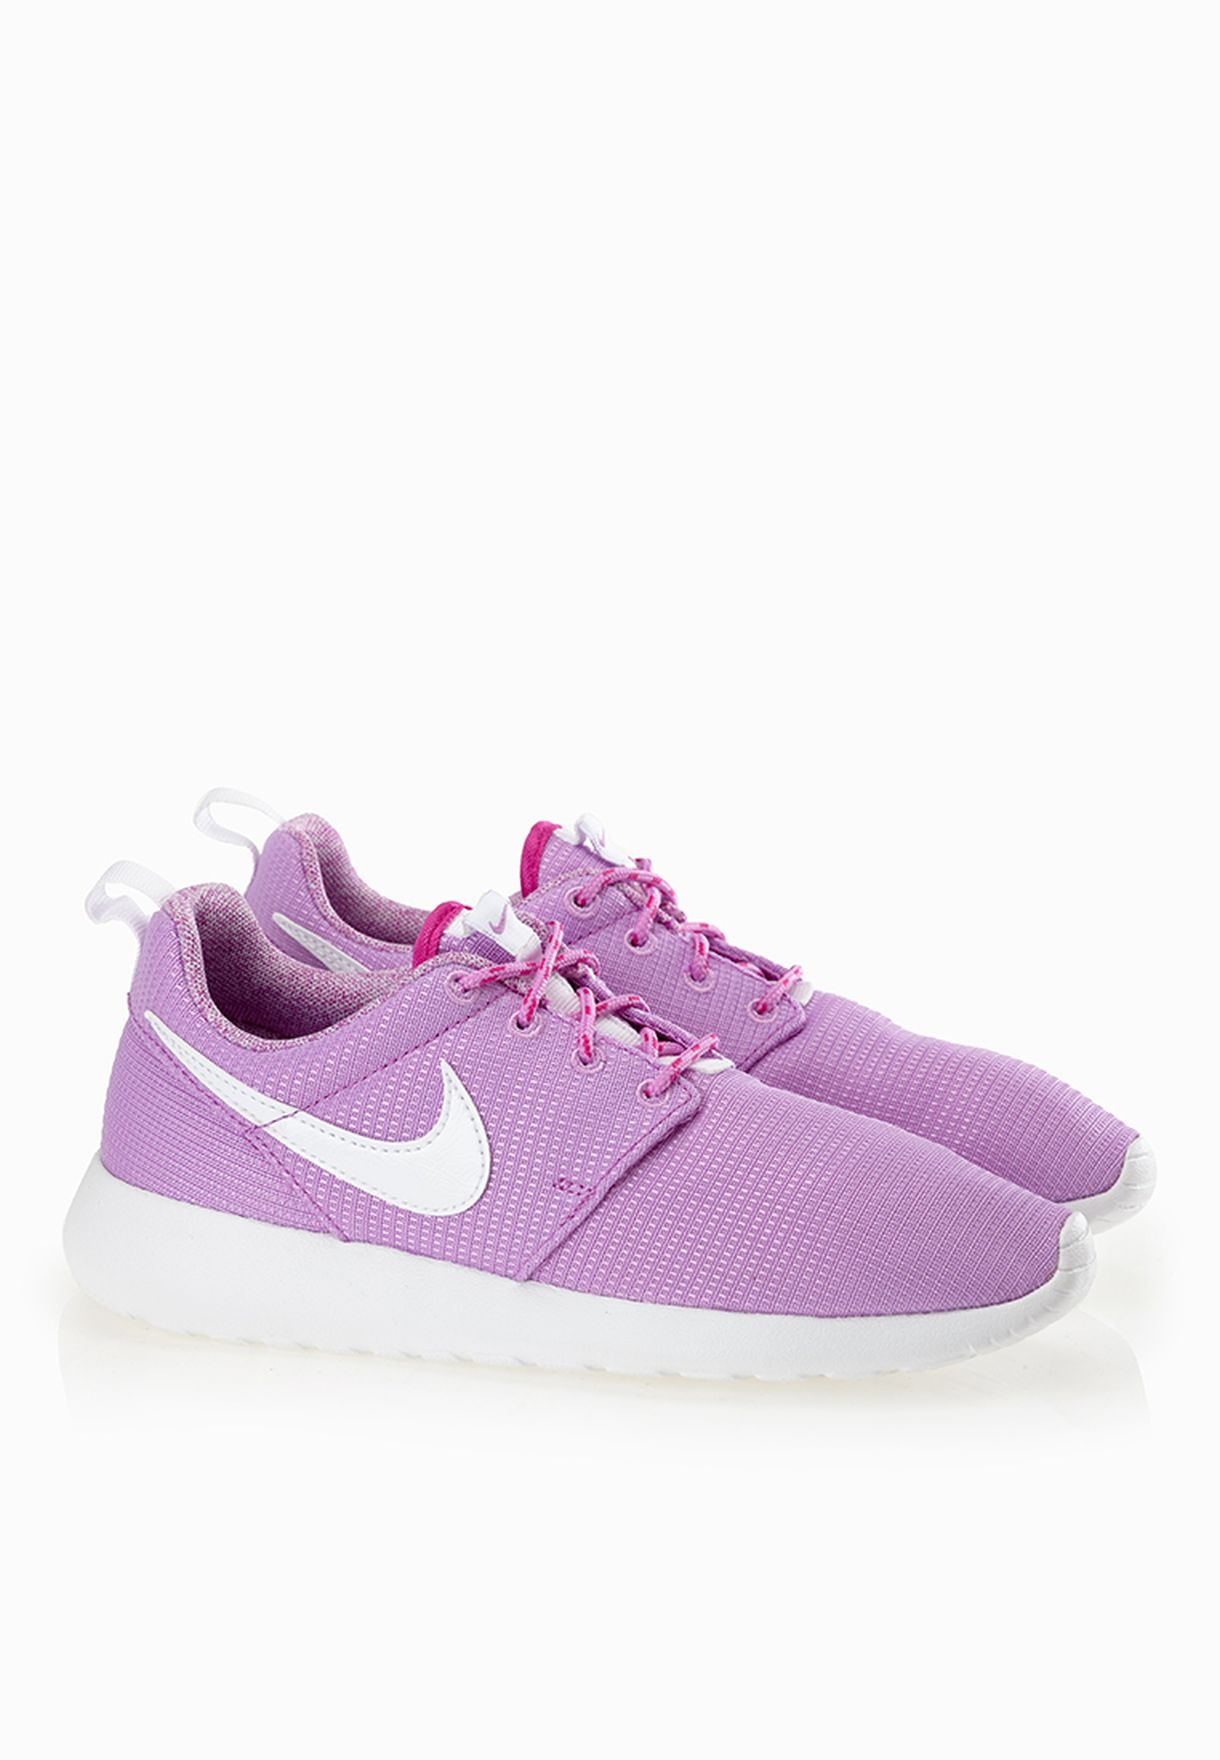 c14683053fe8 Shop Nike purple Nike Rosherun Youth 599729-503 for Kids in Oman -  NI727SH51OIU